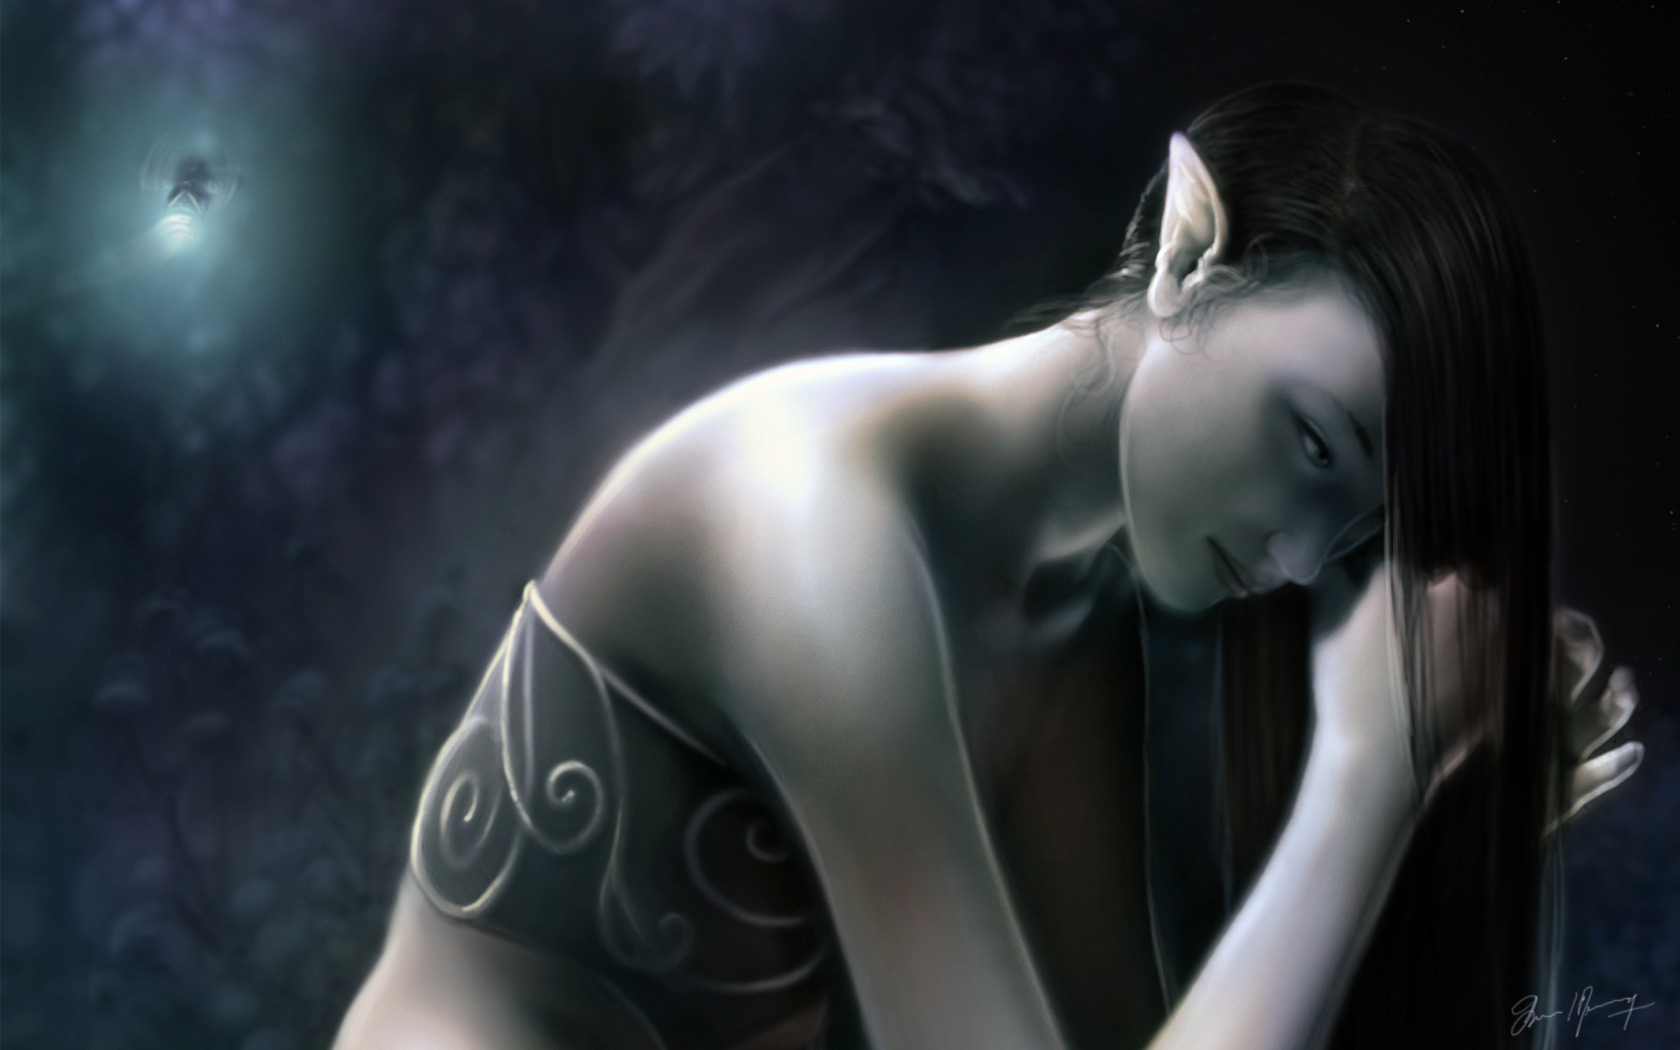 Gallery the dark elf lover 3d pic  porn scene